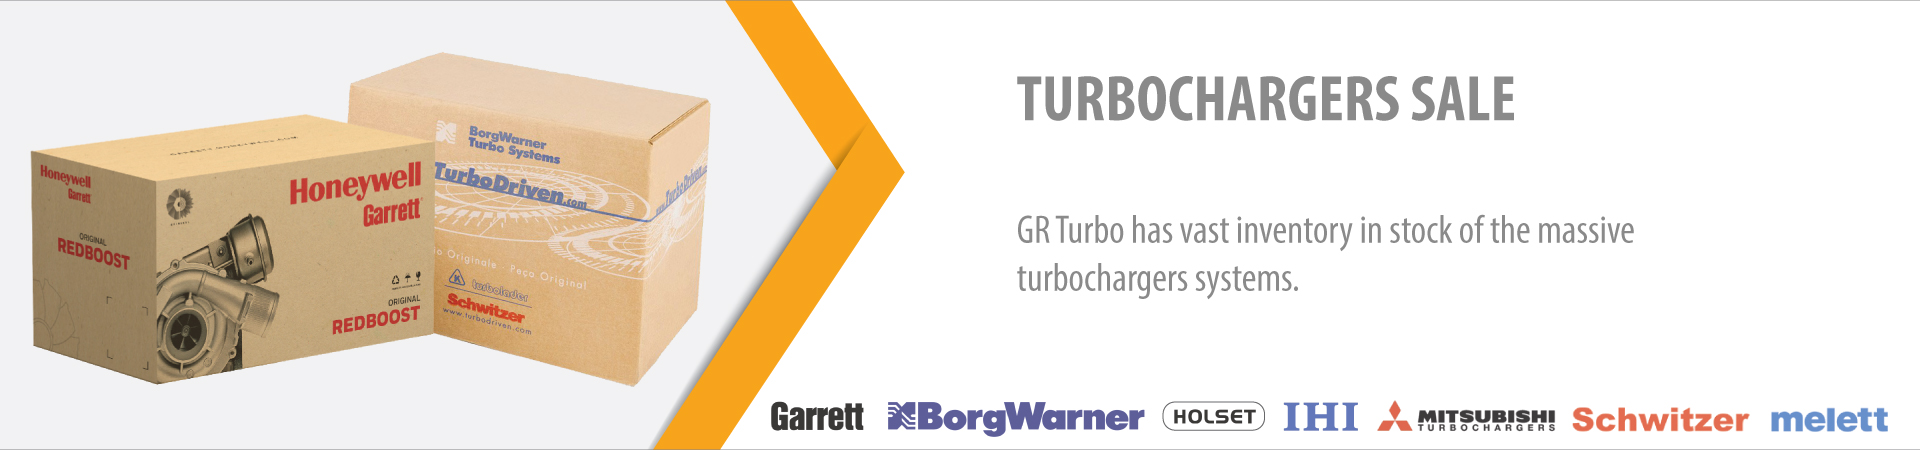 GR Turbo has vast inventory in stock of the massive turbochargers systems.